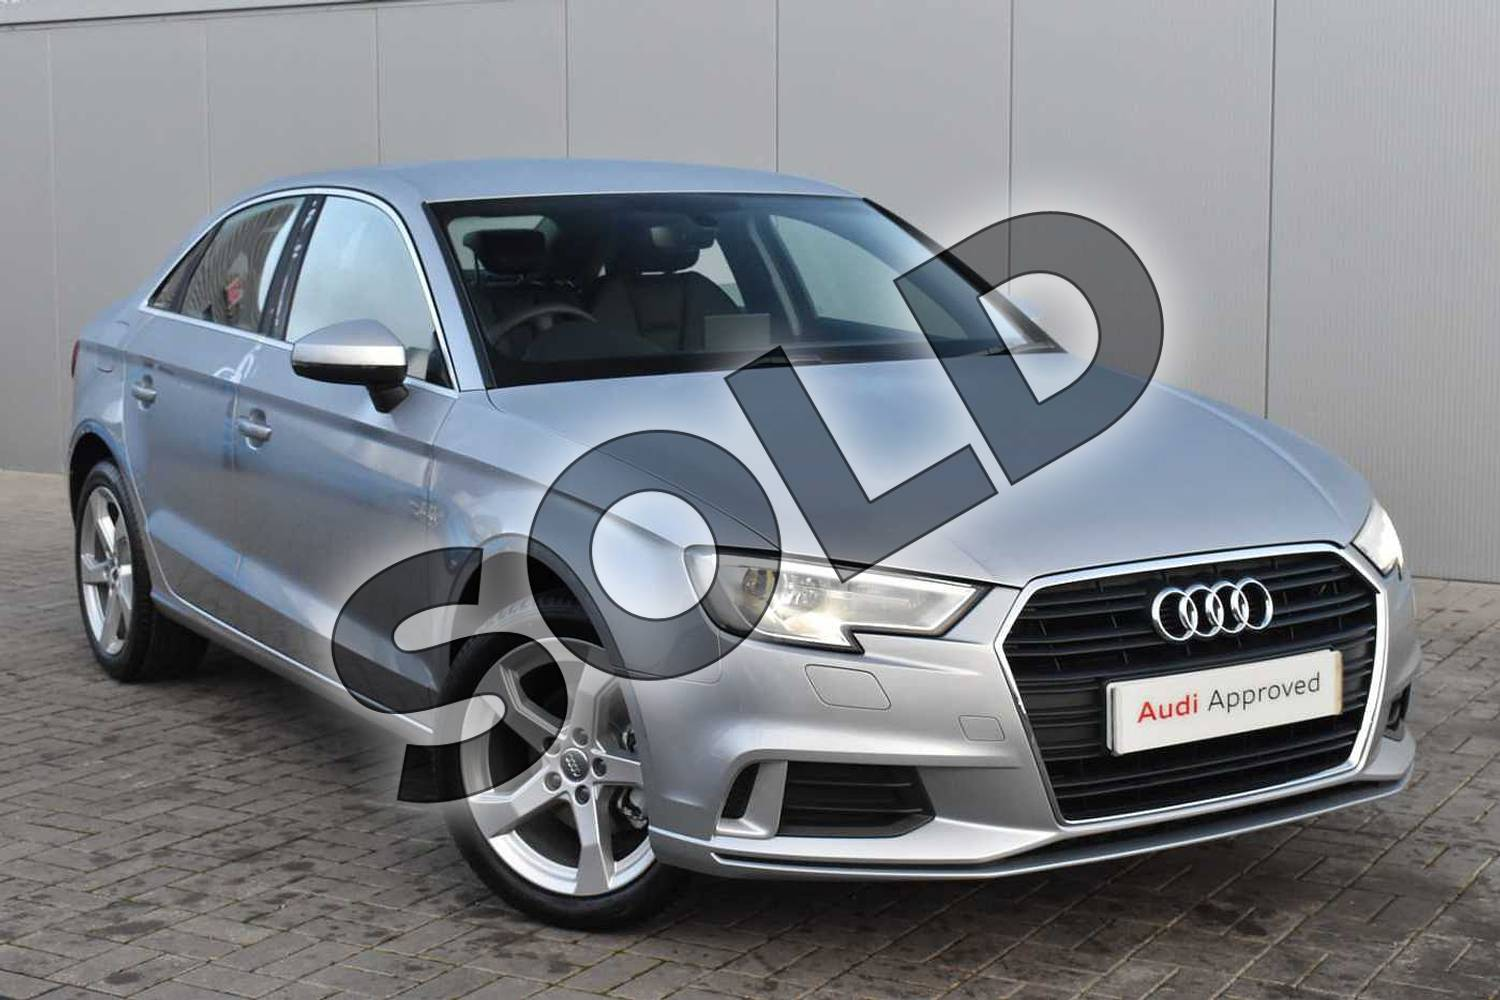 2018 Audi A3 Saloon 30 TFSI Sport 4dr S Tronic in Floret Silver Metallic at Stratford Audi